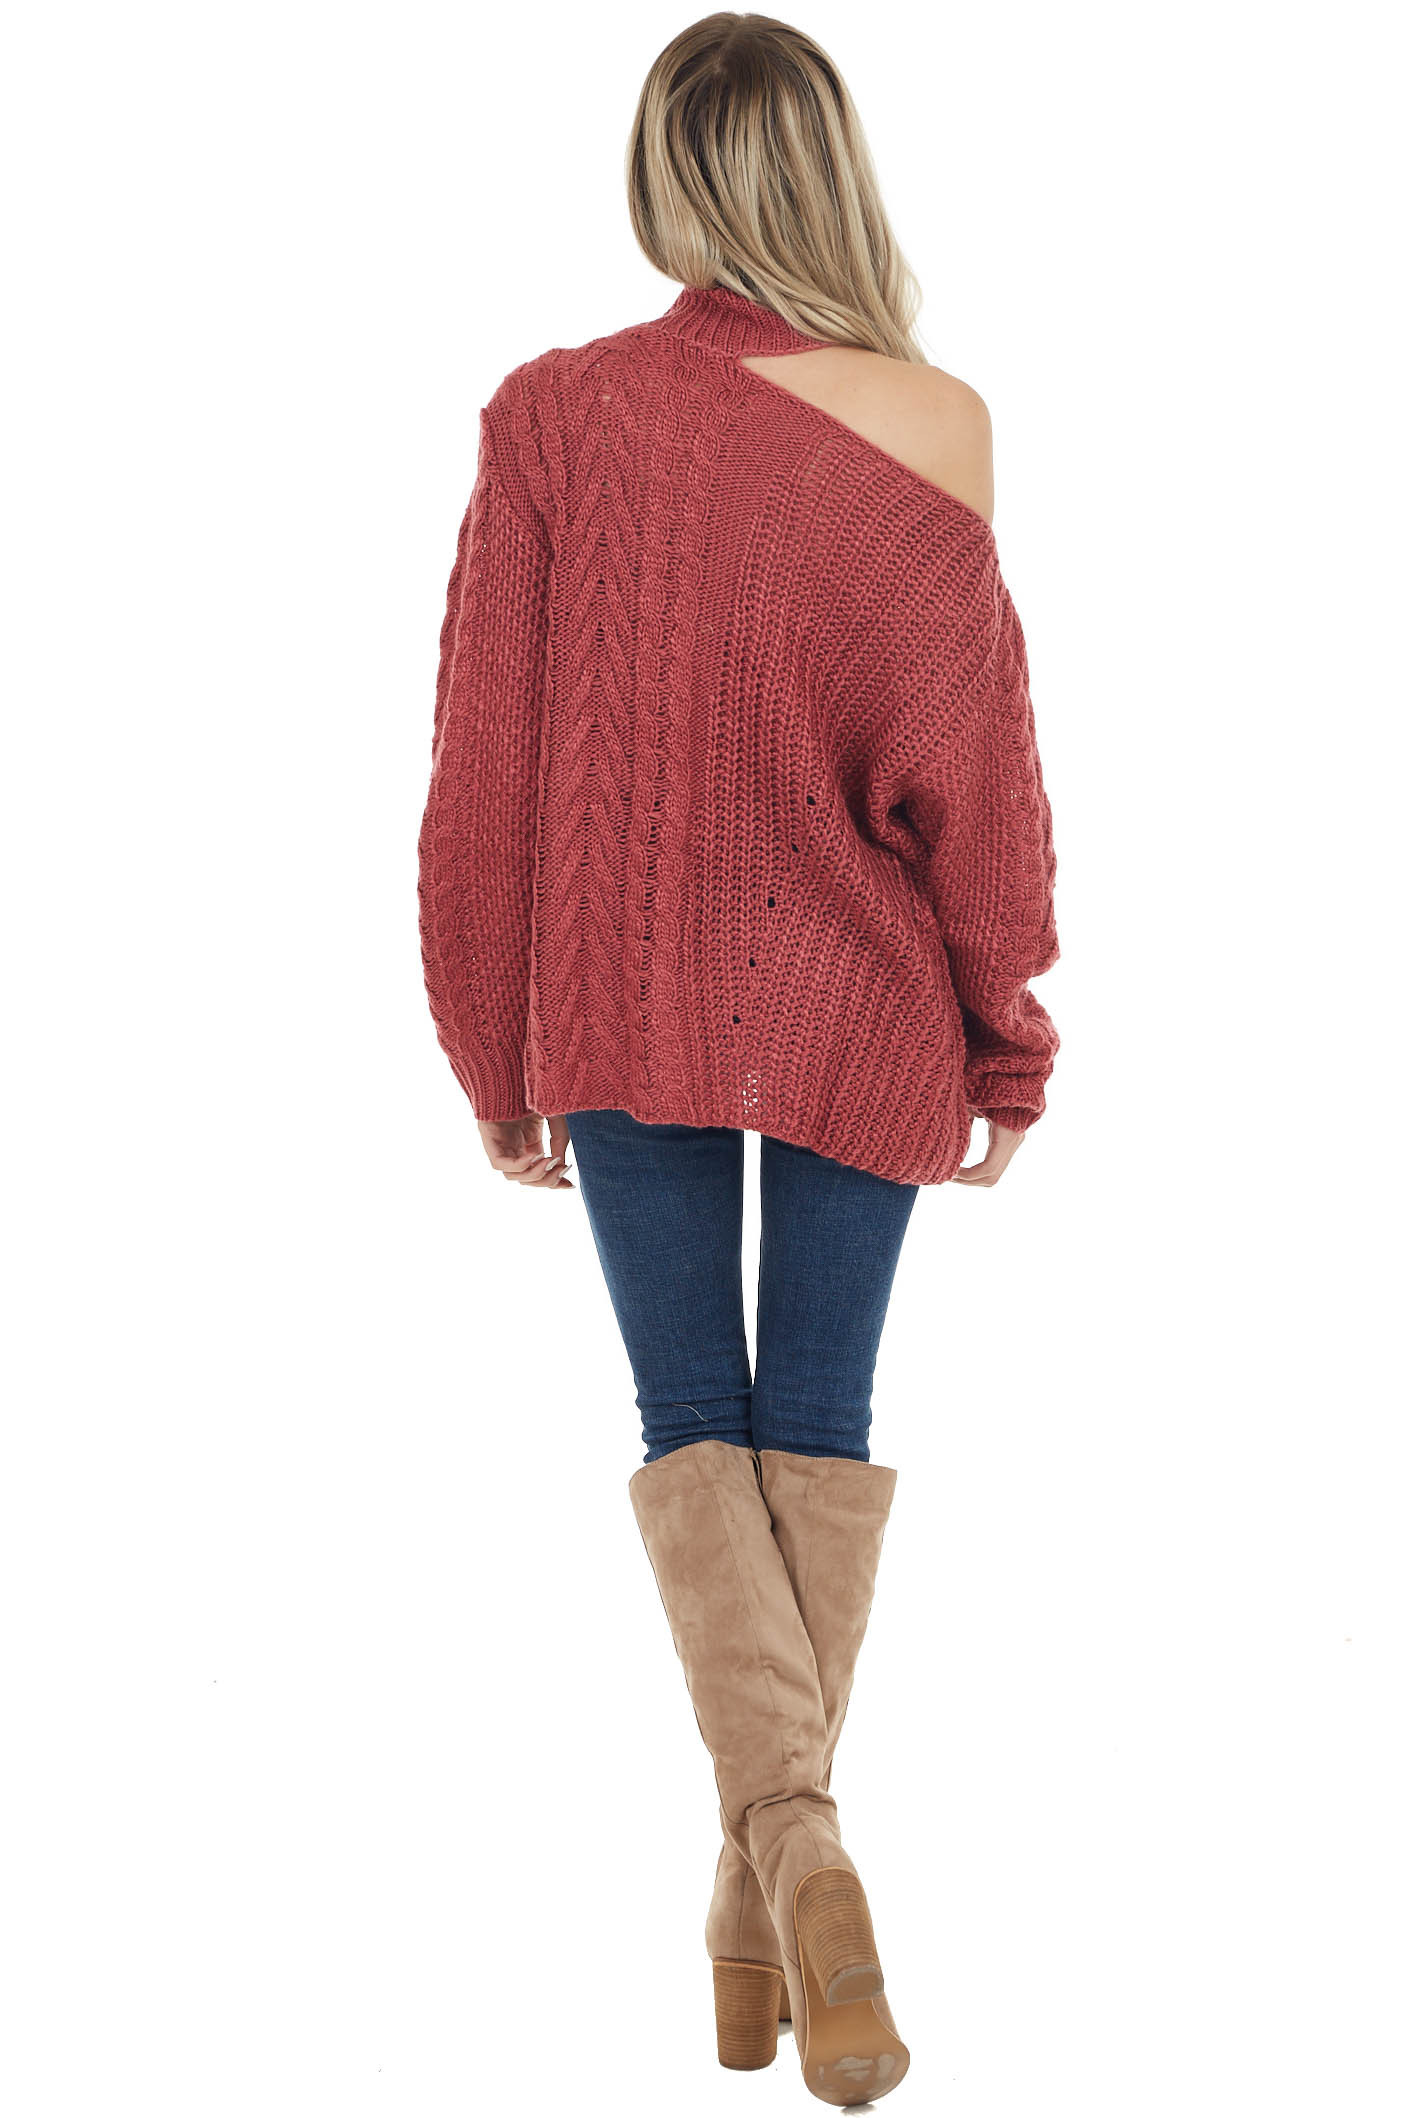 Berry Chunky Knit Sweater with Mock Neck and Cold Shoulder